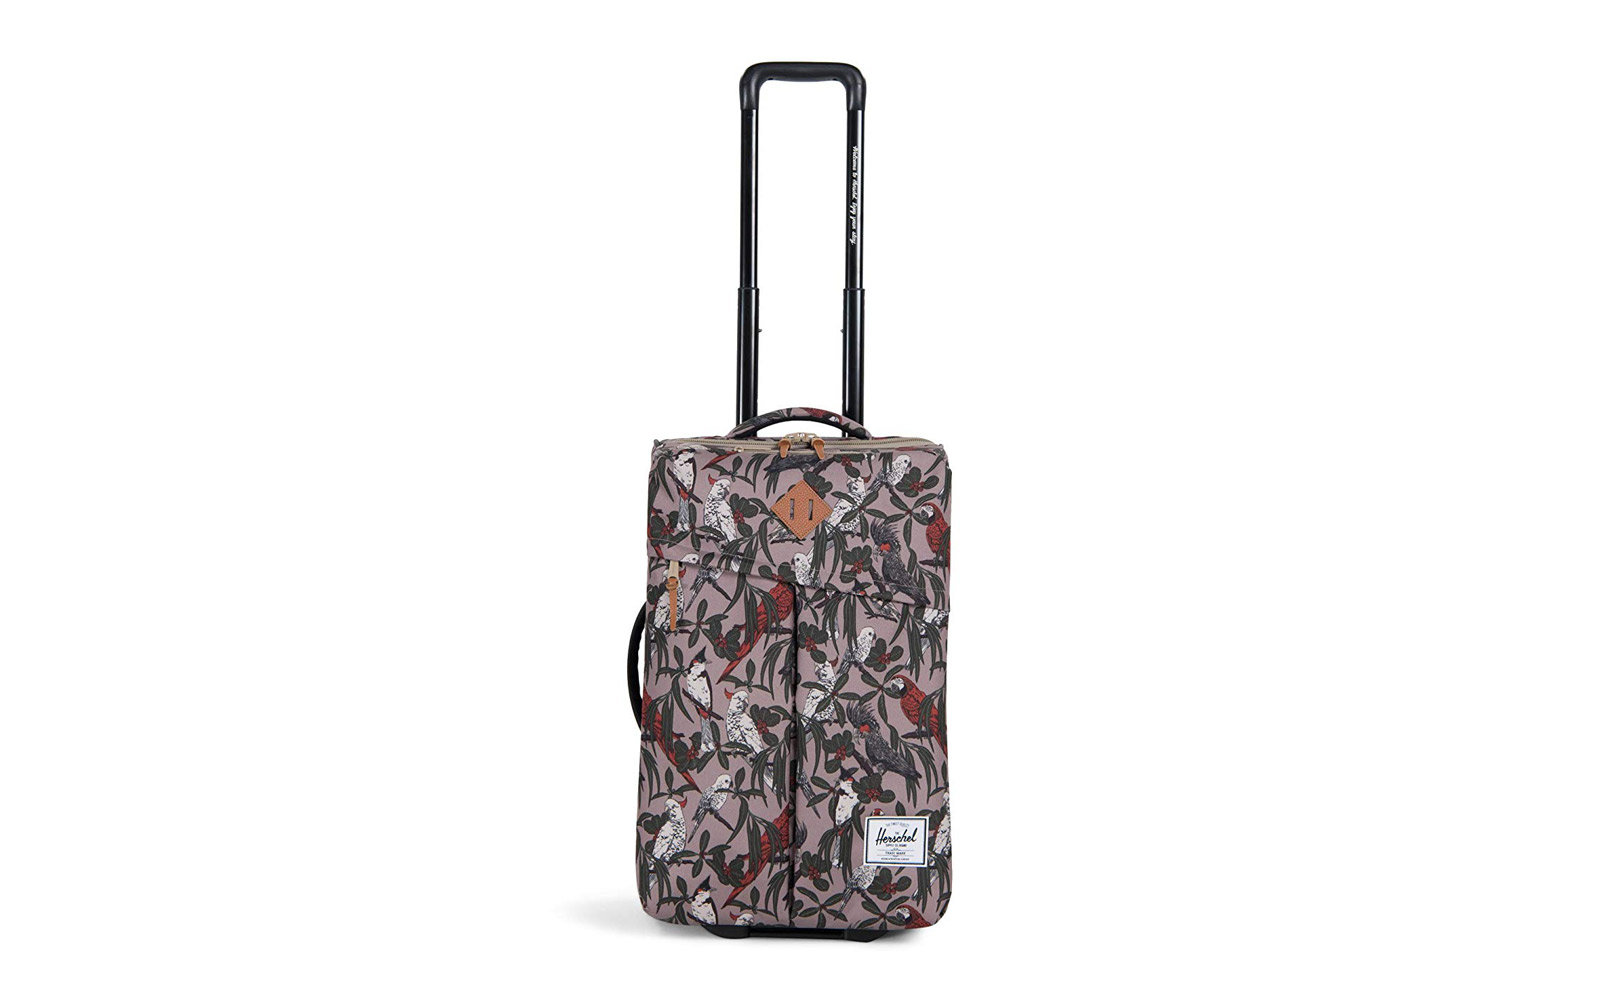 Herschel Supply Co. Campaign Softside Luggage